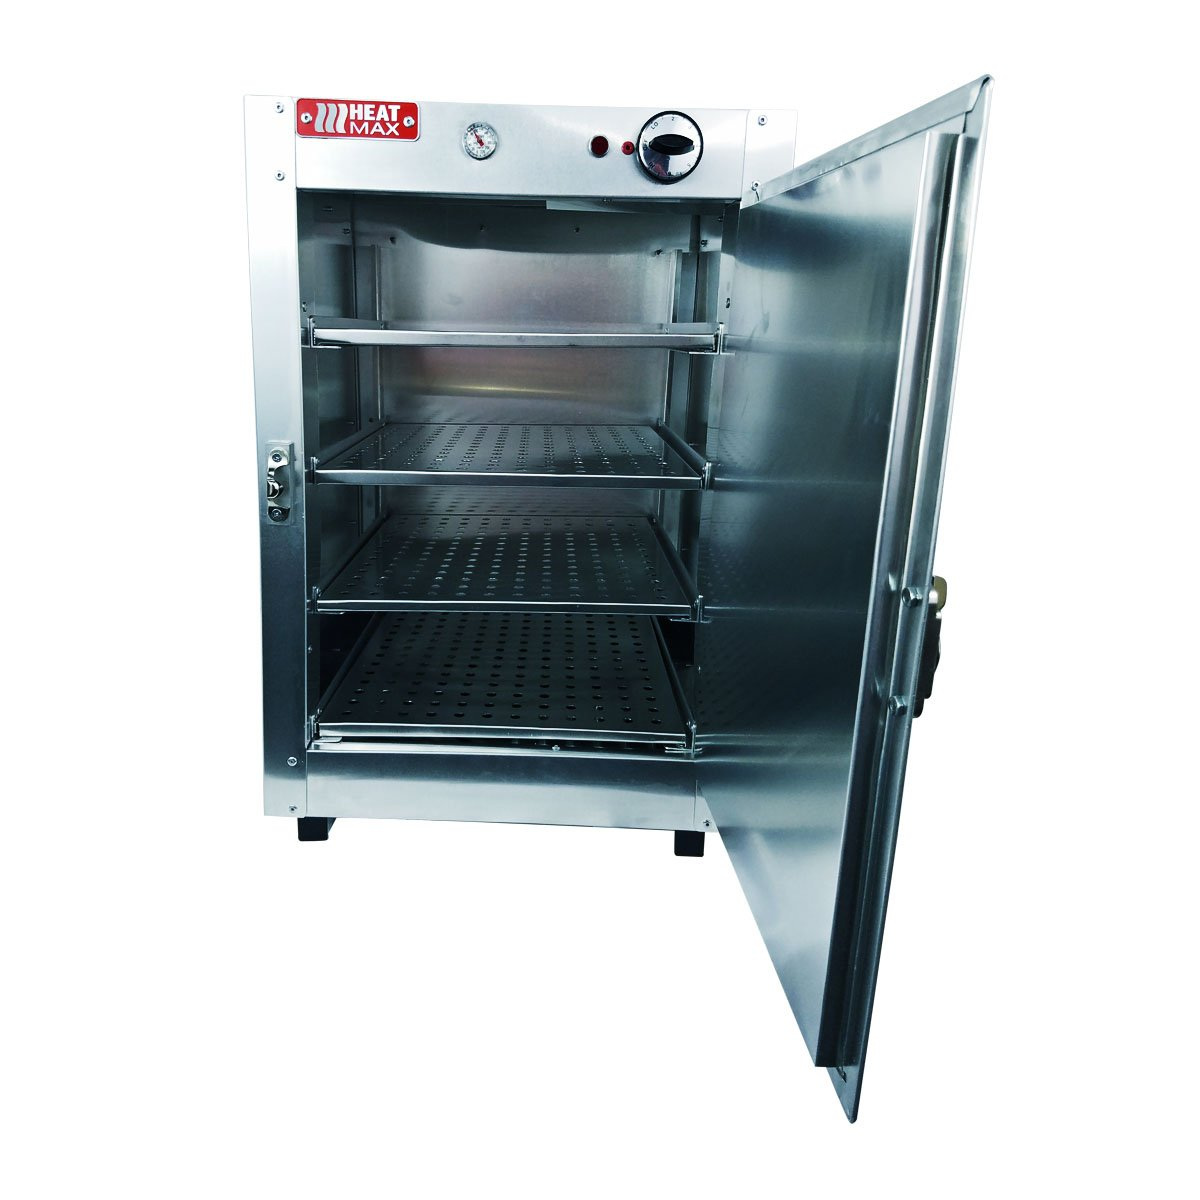 Amazon.com: HeatMax Commercial Food Pastry Warming Case Aluminum 16x16x24 Hot  Box Cabinet: Appliances